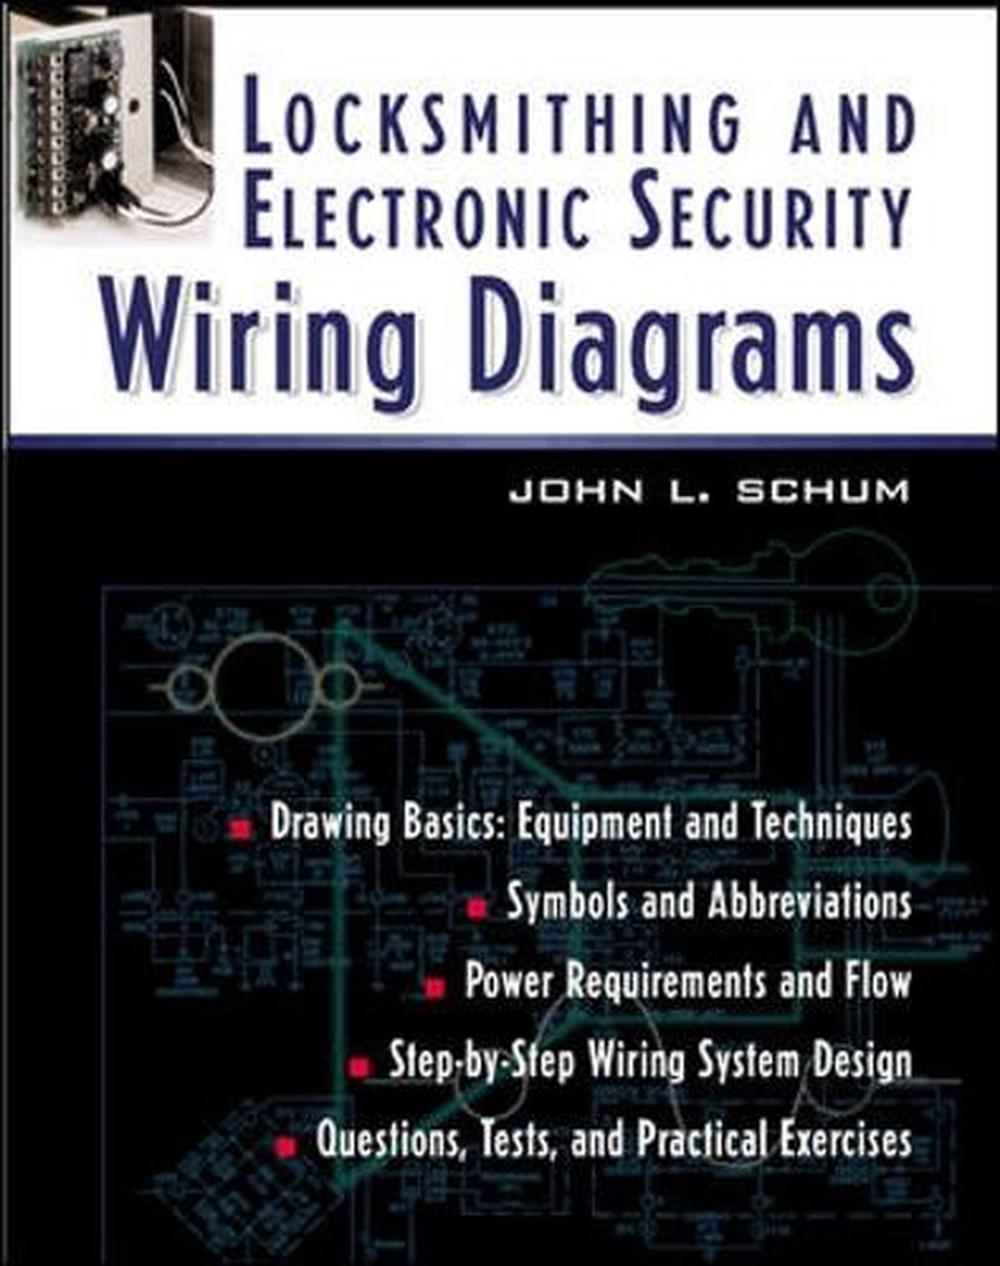 small resolution of details about locksmithing and electronic security wiring diagrams by j l schum english pap